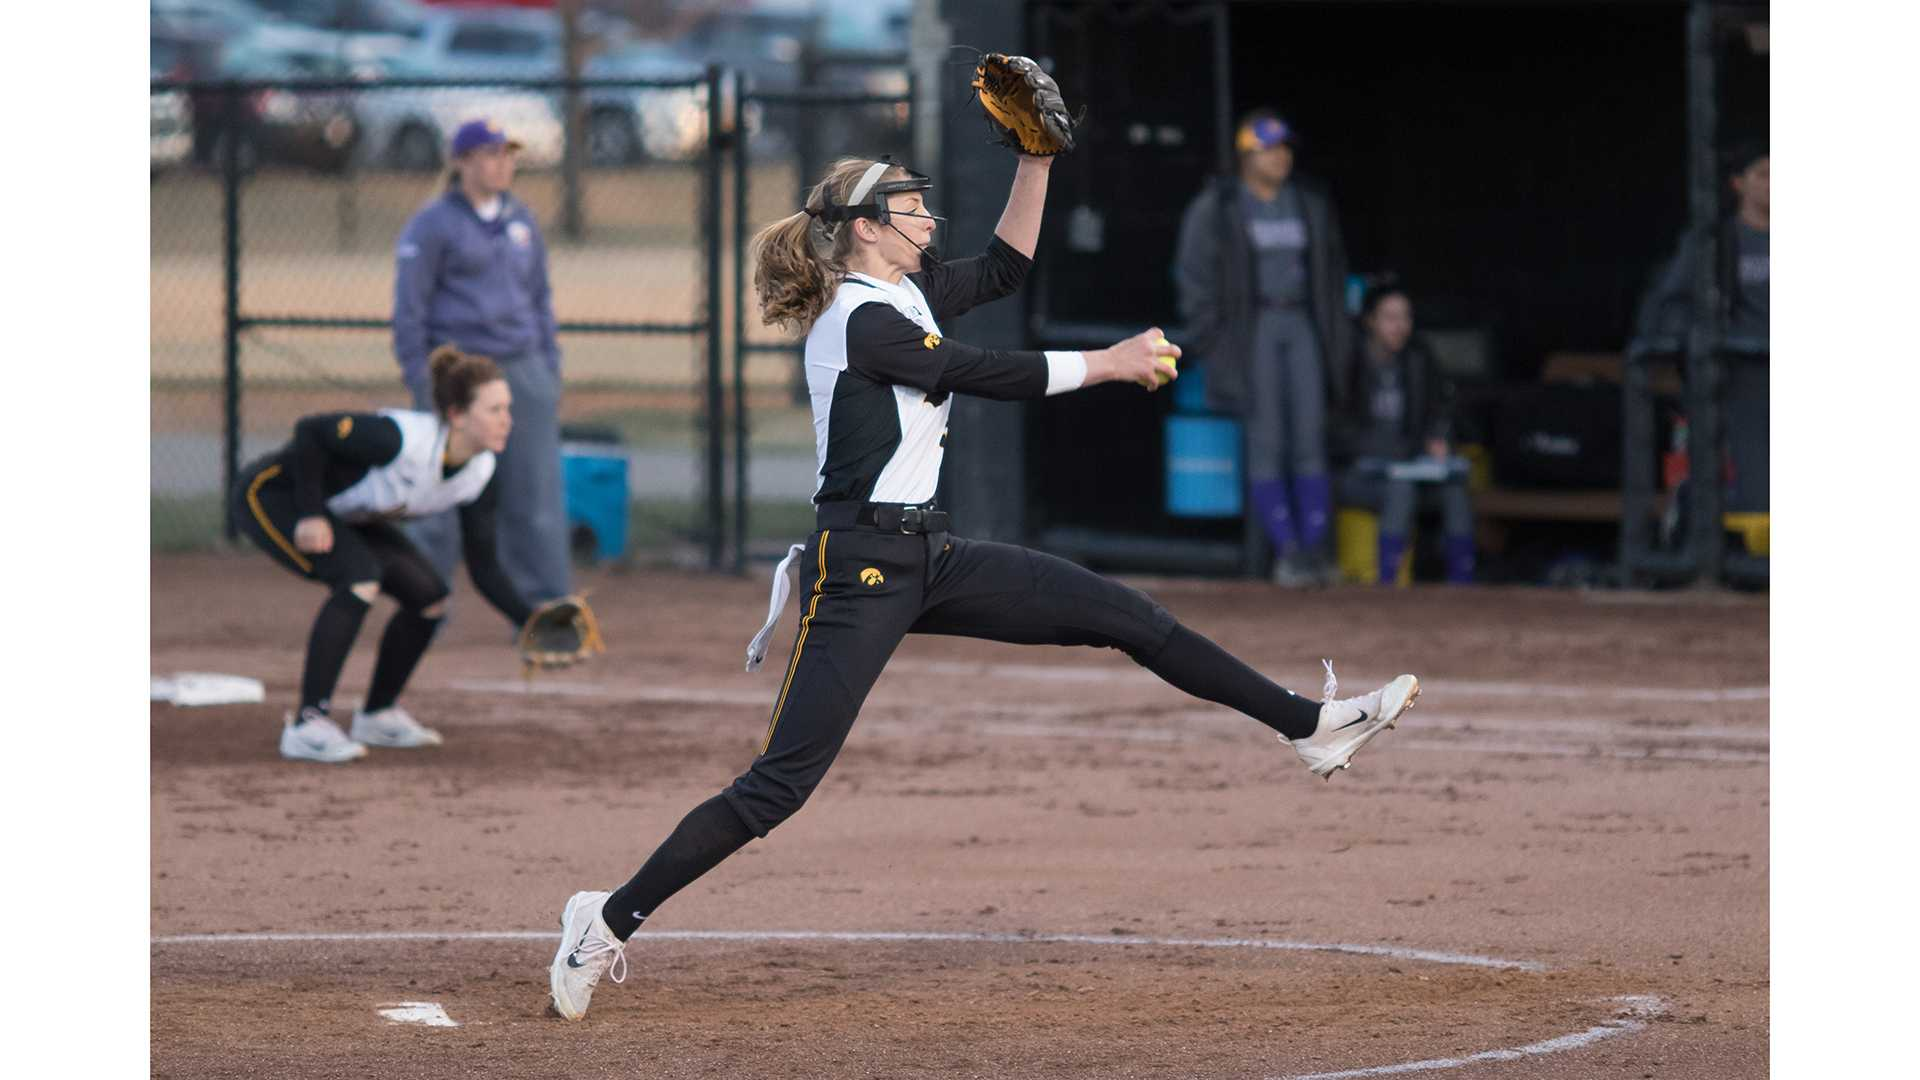 University of Iowa softball player Allison Doocy winds up to pitch during a game against Western Illinois University on Tuesday, Apr. 17, 2018. The Fighting Leathernecks defeated the Hawkeyes 2-1. (David Harmantas/The Daily Iowan)